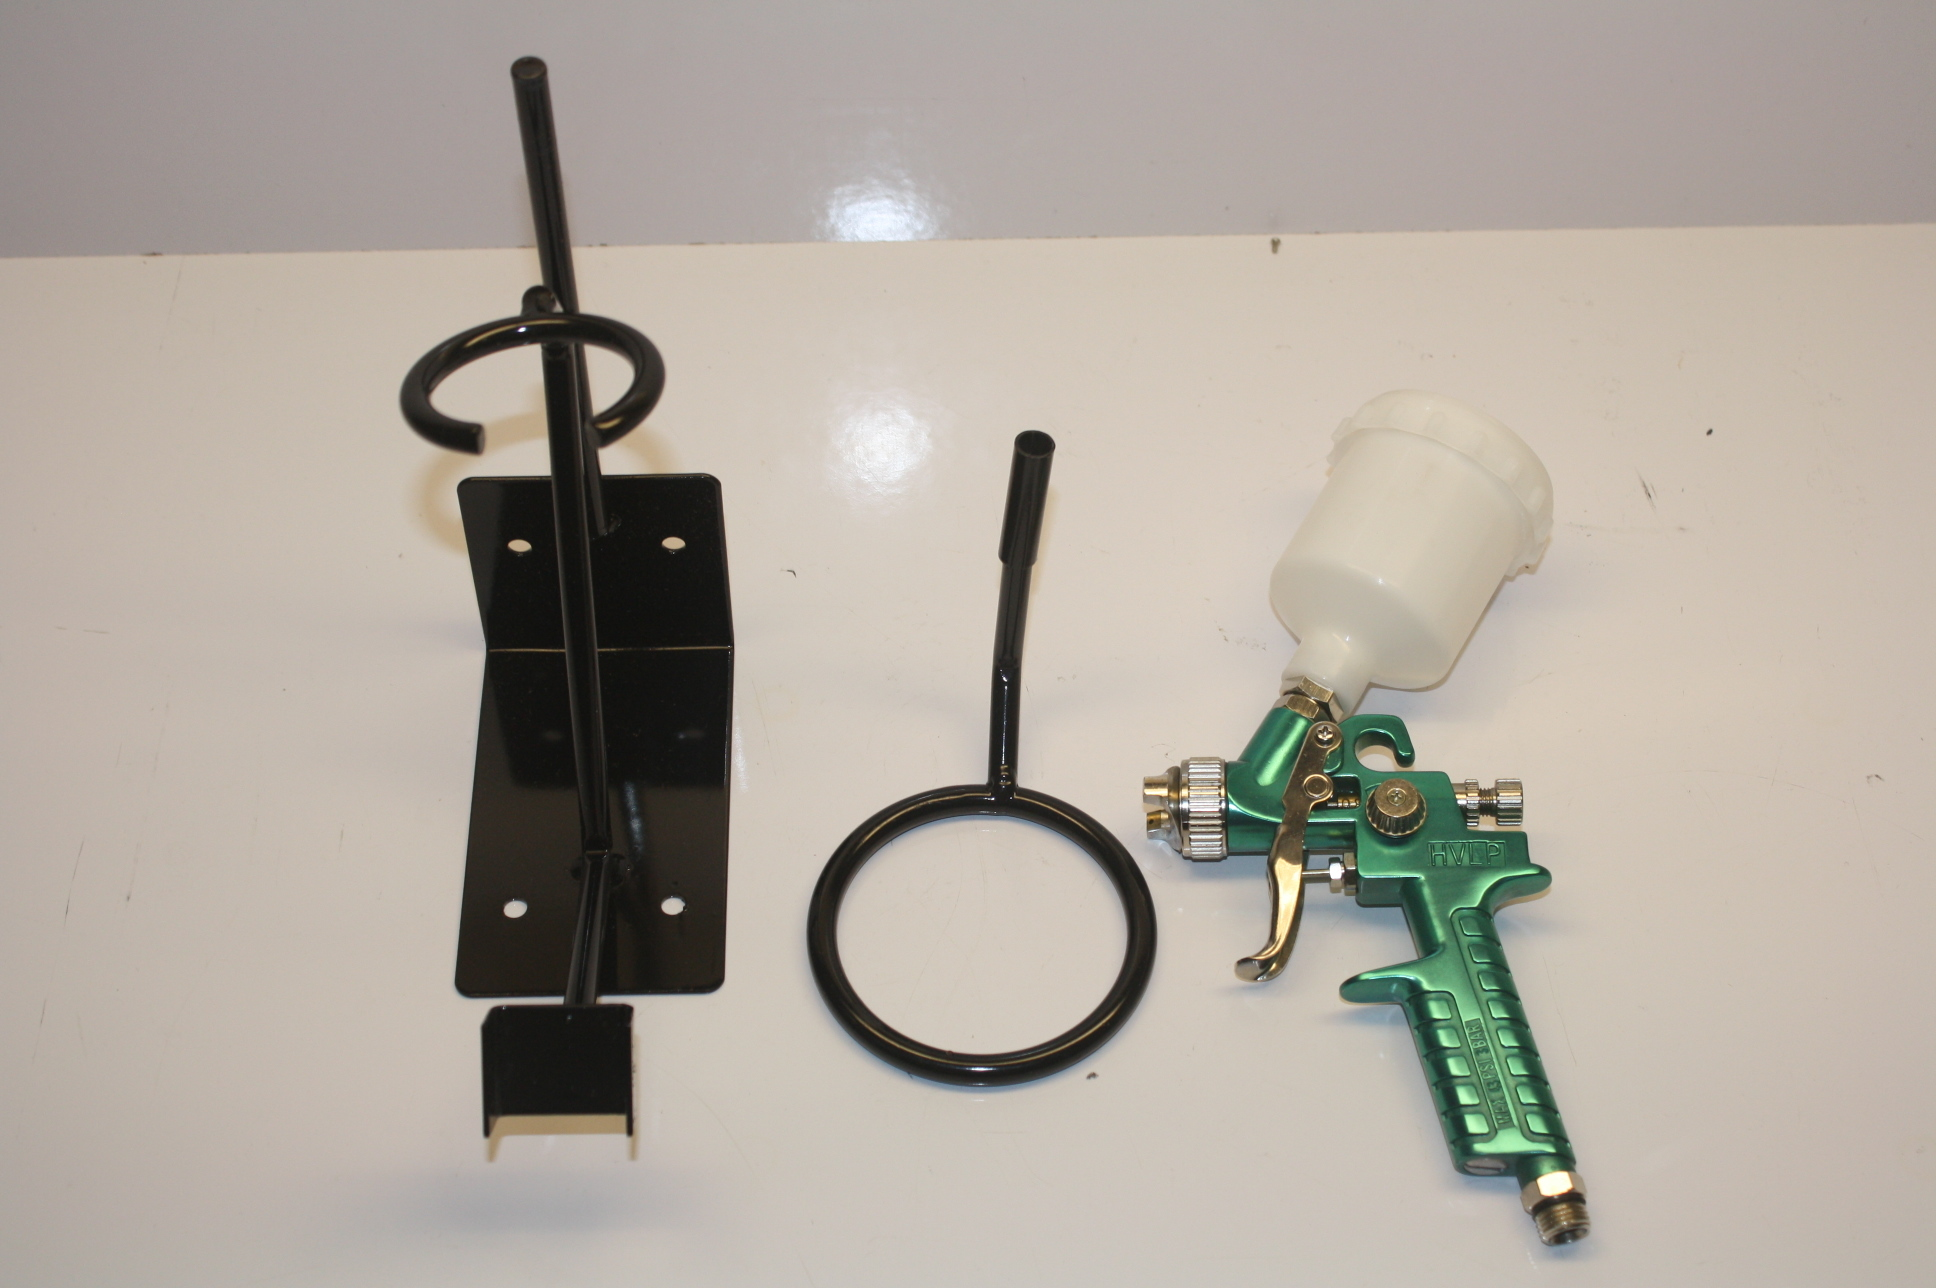 Touch Up Spray Gun KA-1182 Power-Mite With Wall Mount New-Open Box!